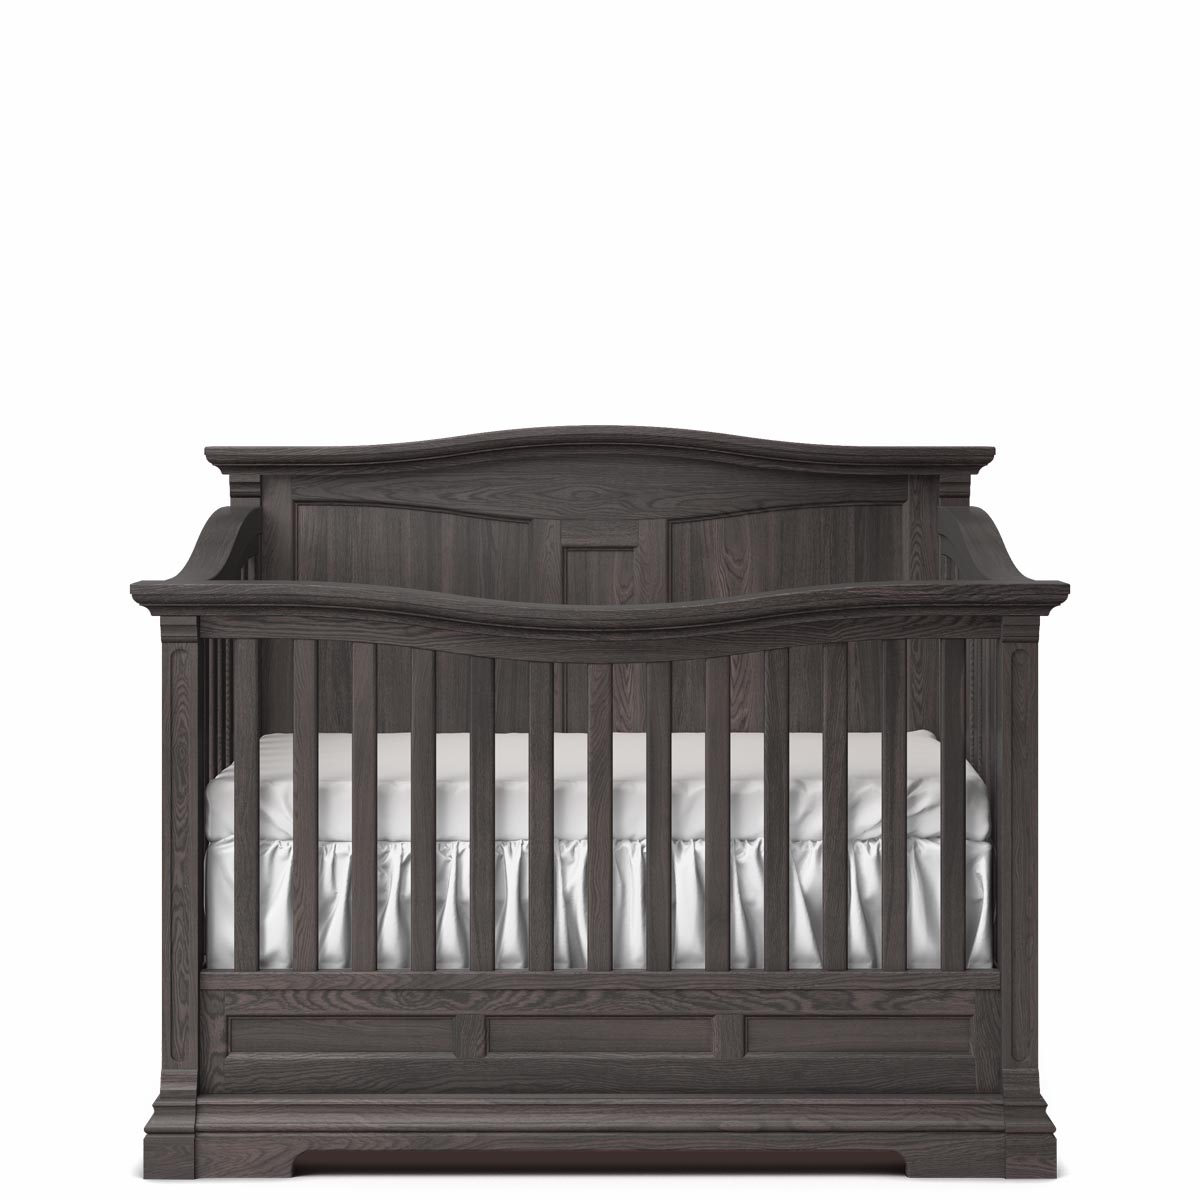 Romina Furniture Imperio Panel Crib - Oil Grey